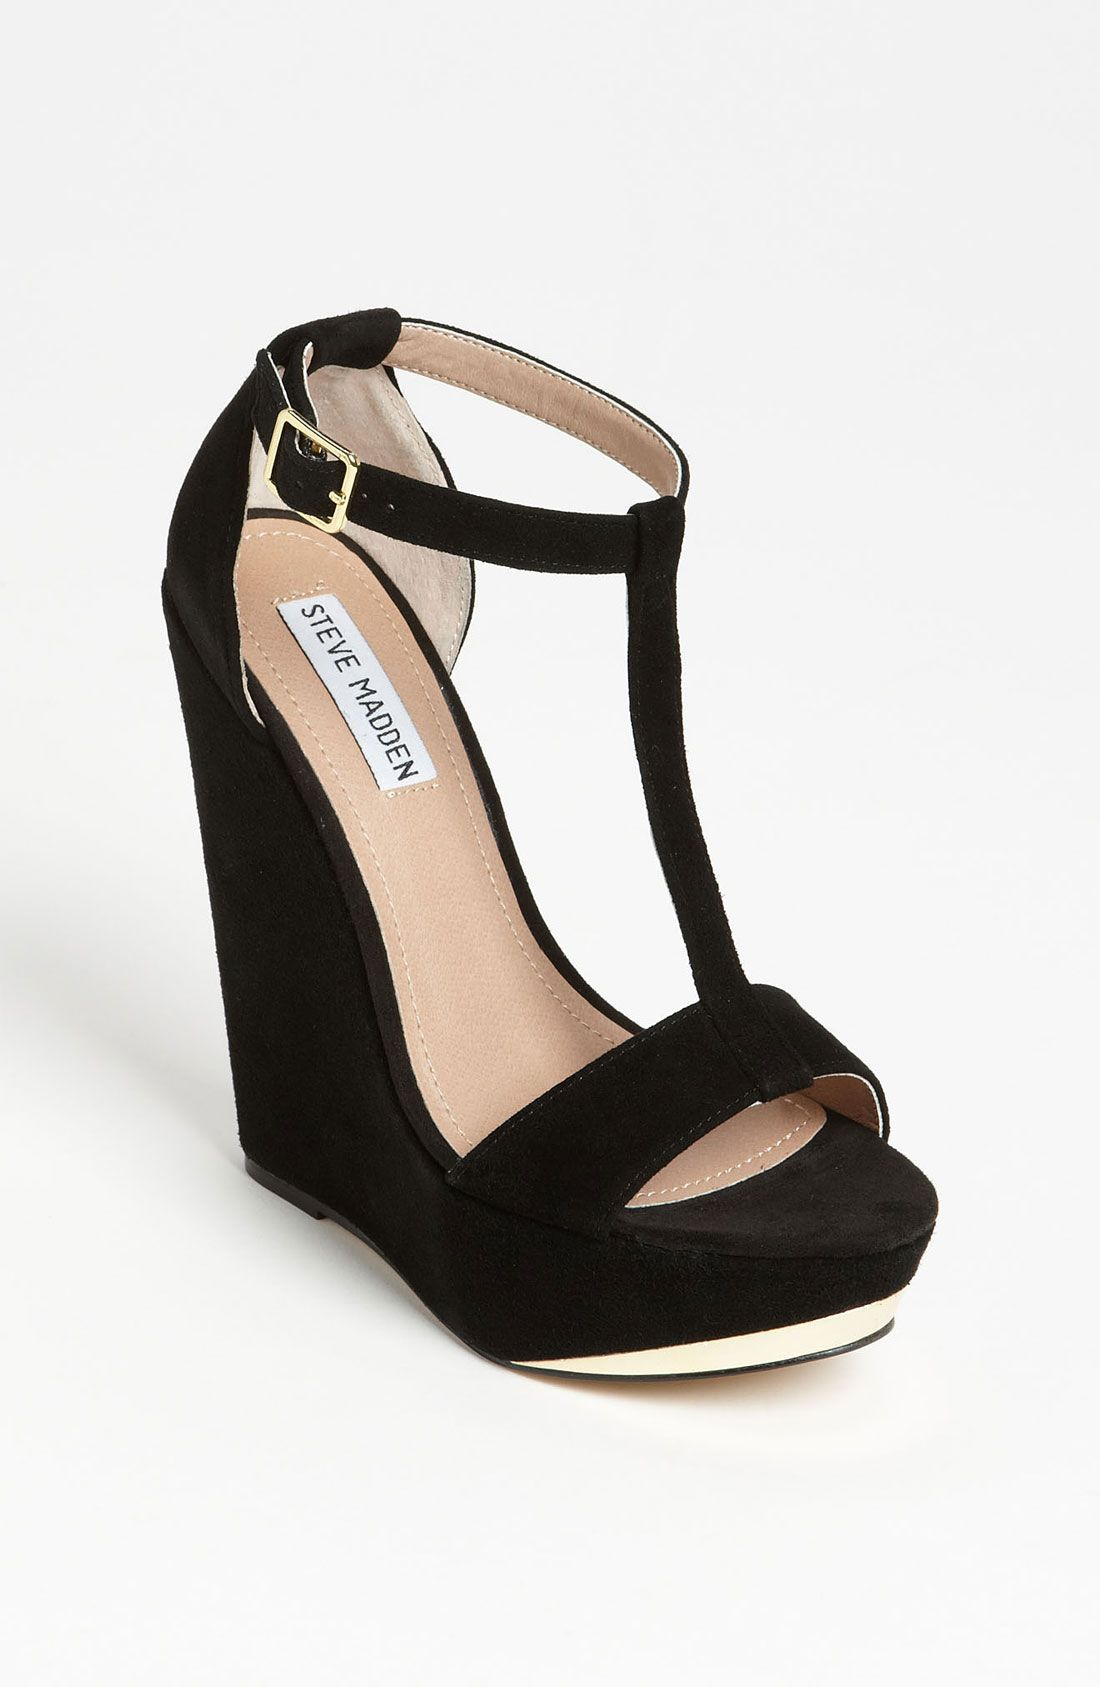 4d23af0c7a Steve Madden 'Xtrime' Wedge Platform | Nordstrom | Shoes in 2019 ...